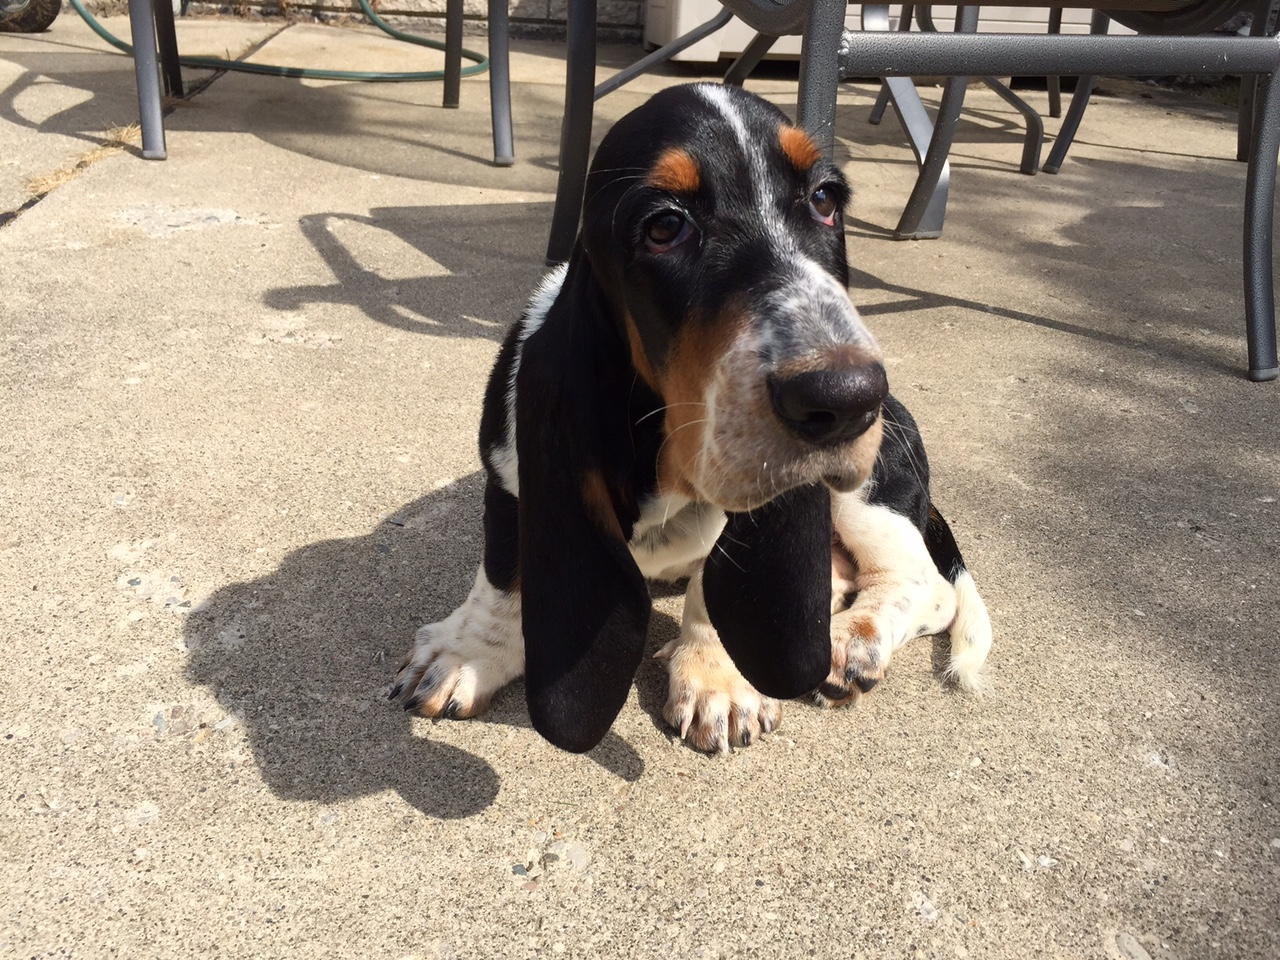 Elvis the Basset Hound